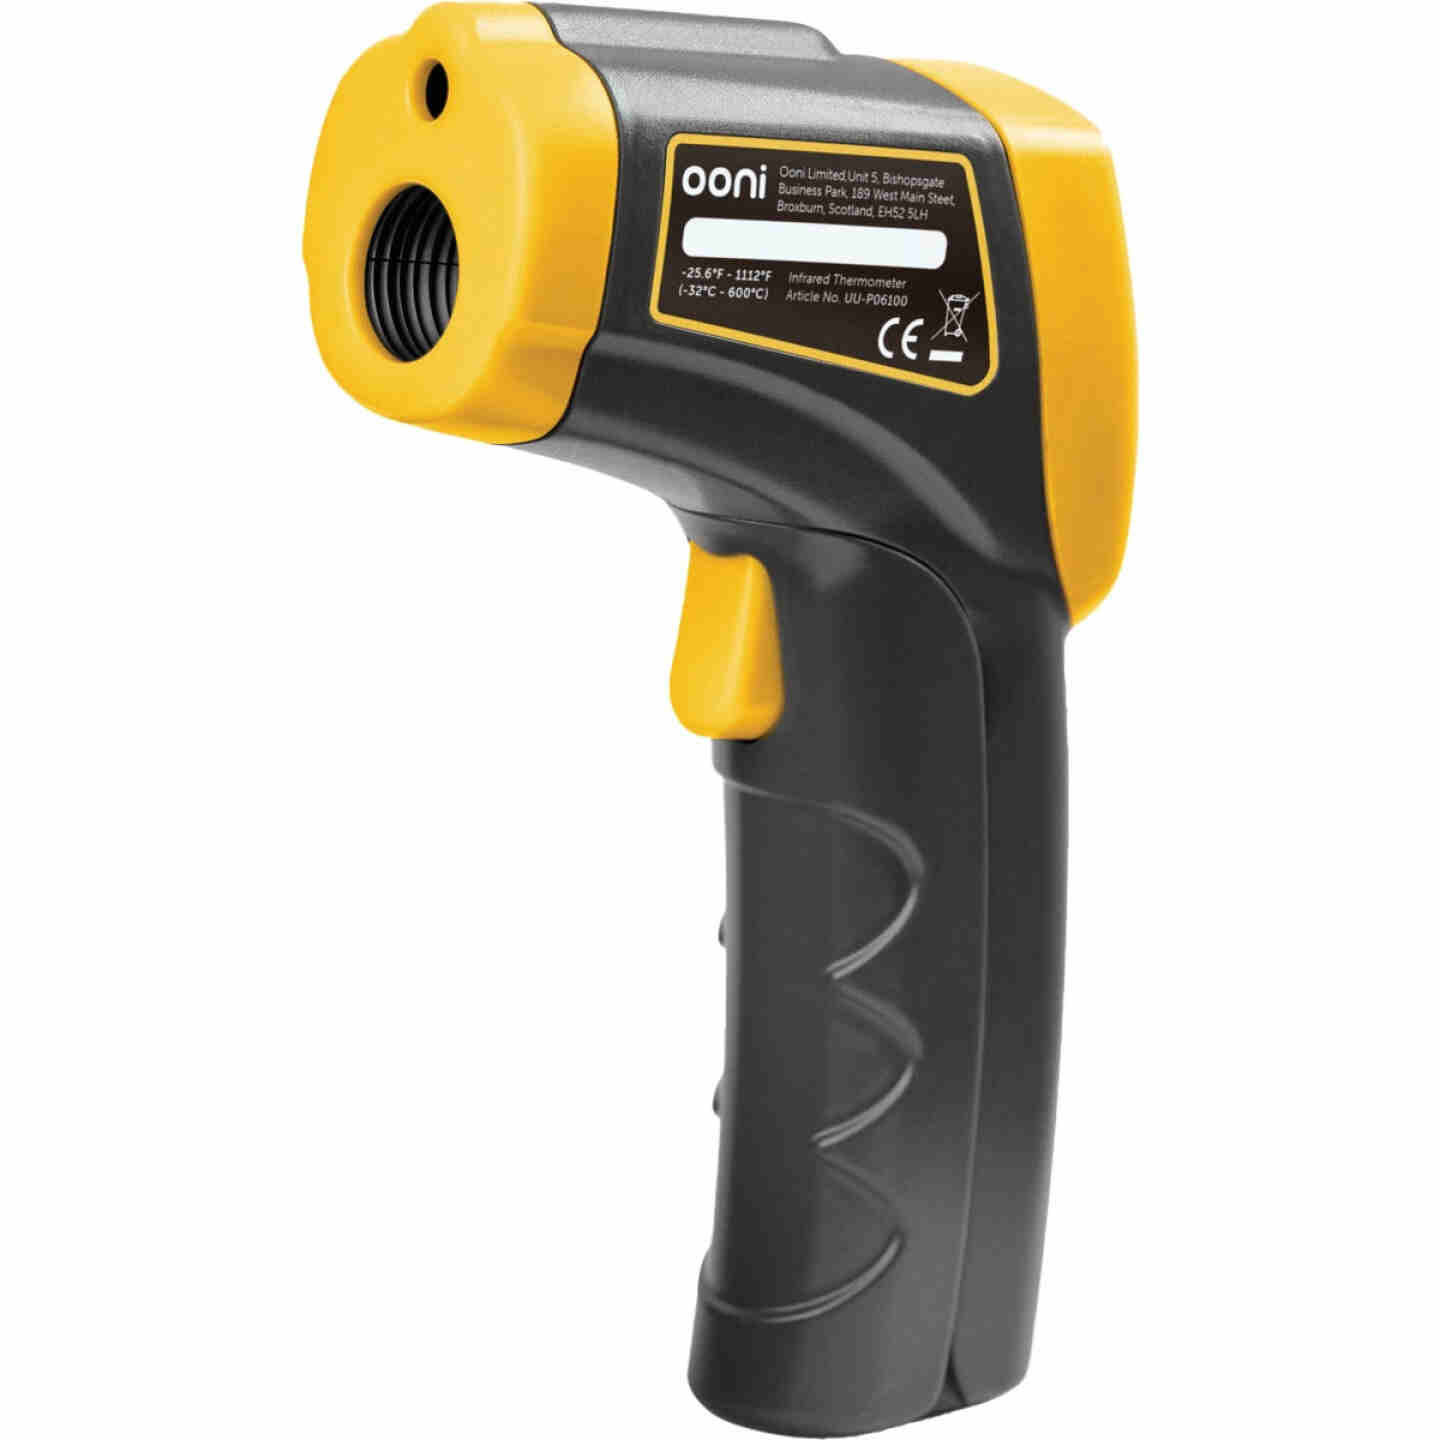 Ooni Digital Infrared Thermometer Image 1